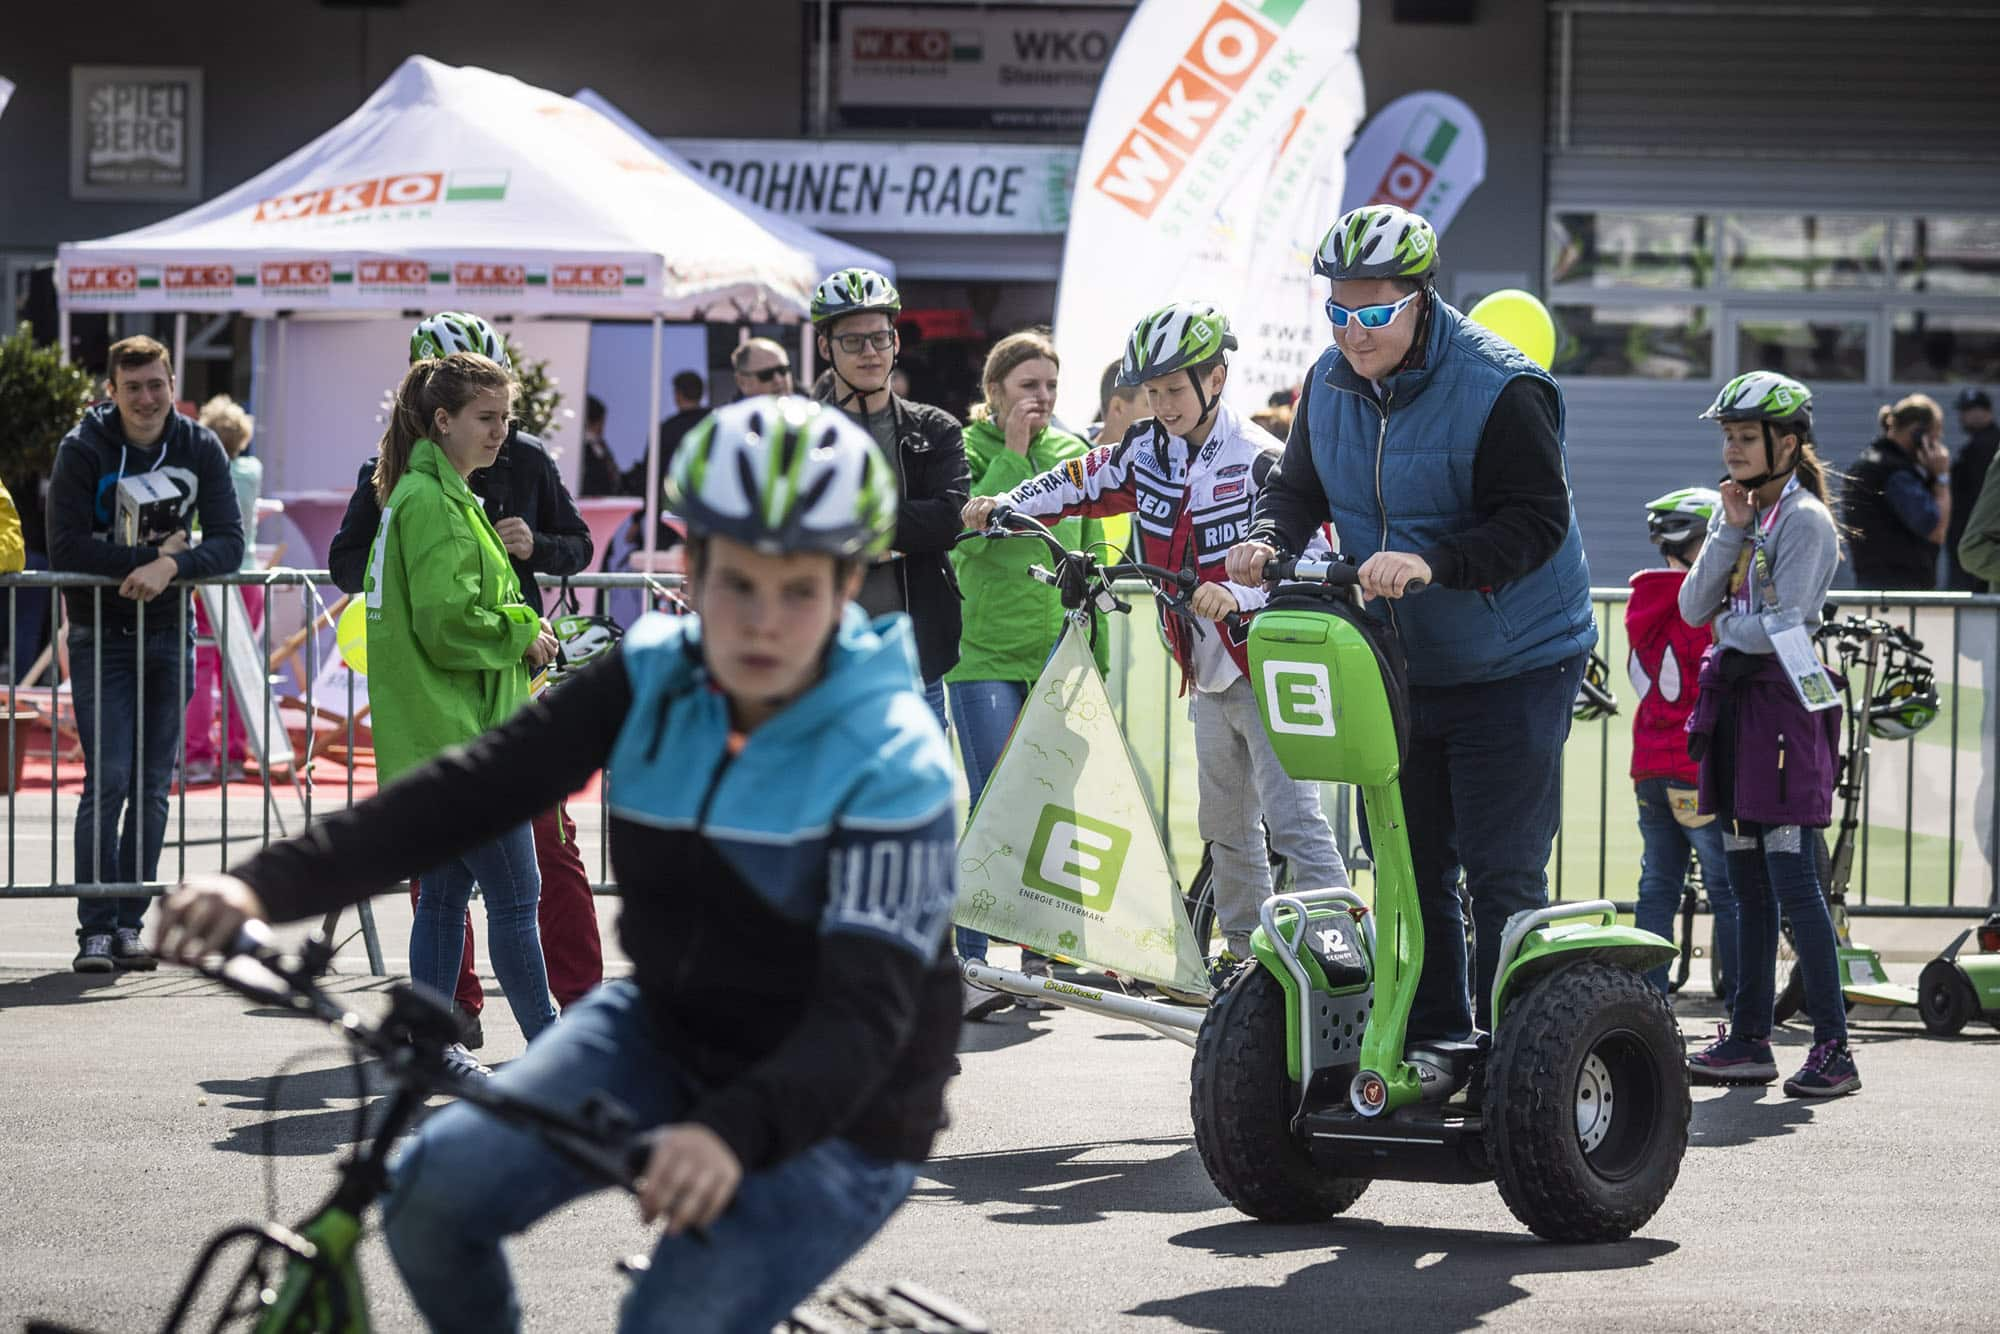 E-MOBILITY PLAY DAYS 2018 LOCKTEN 39.500 BESUCHER AN! » E Mobility Play Days 2018 Energie Steiermark © Philip Platzer Red Bull Content Pool